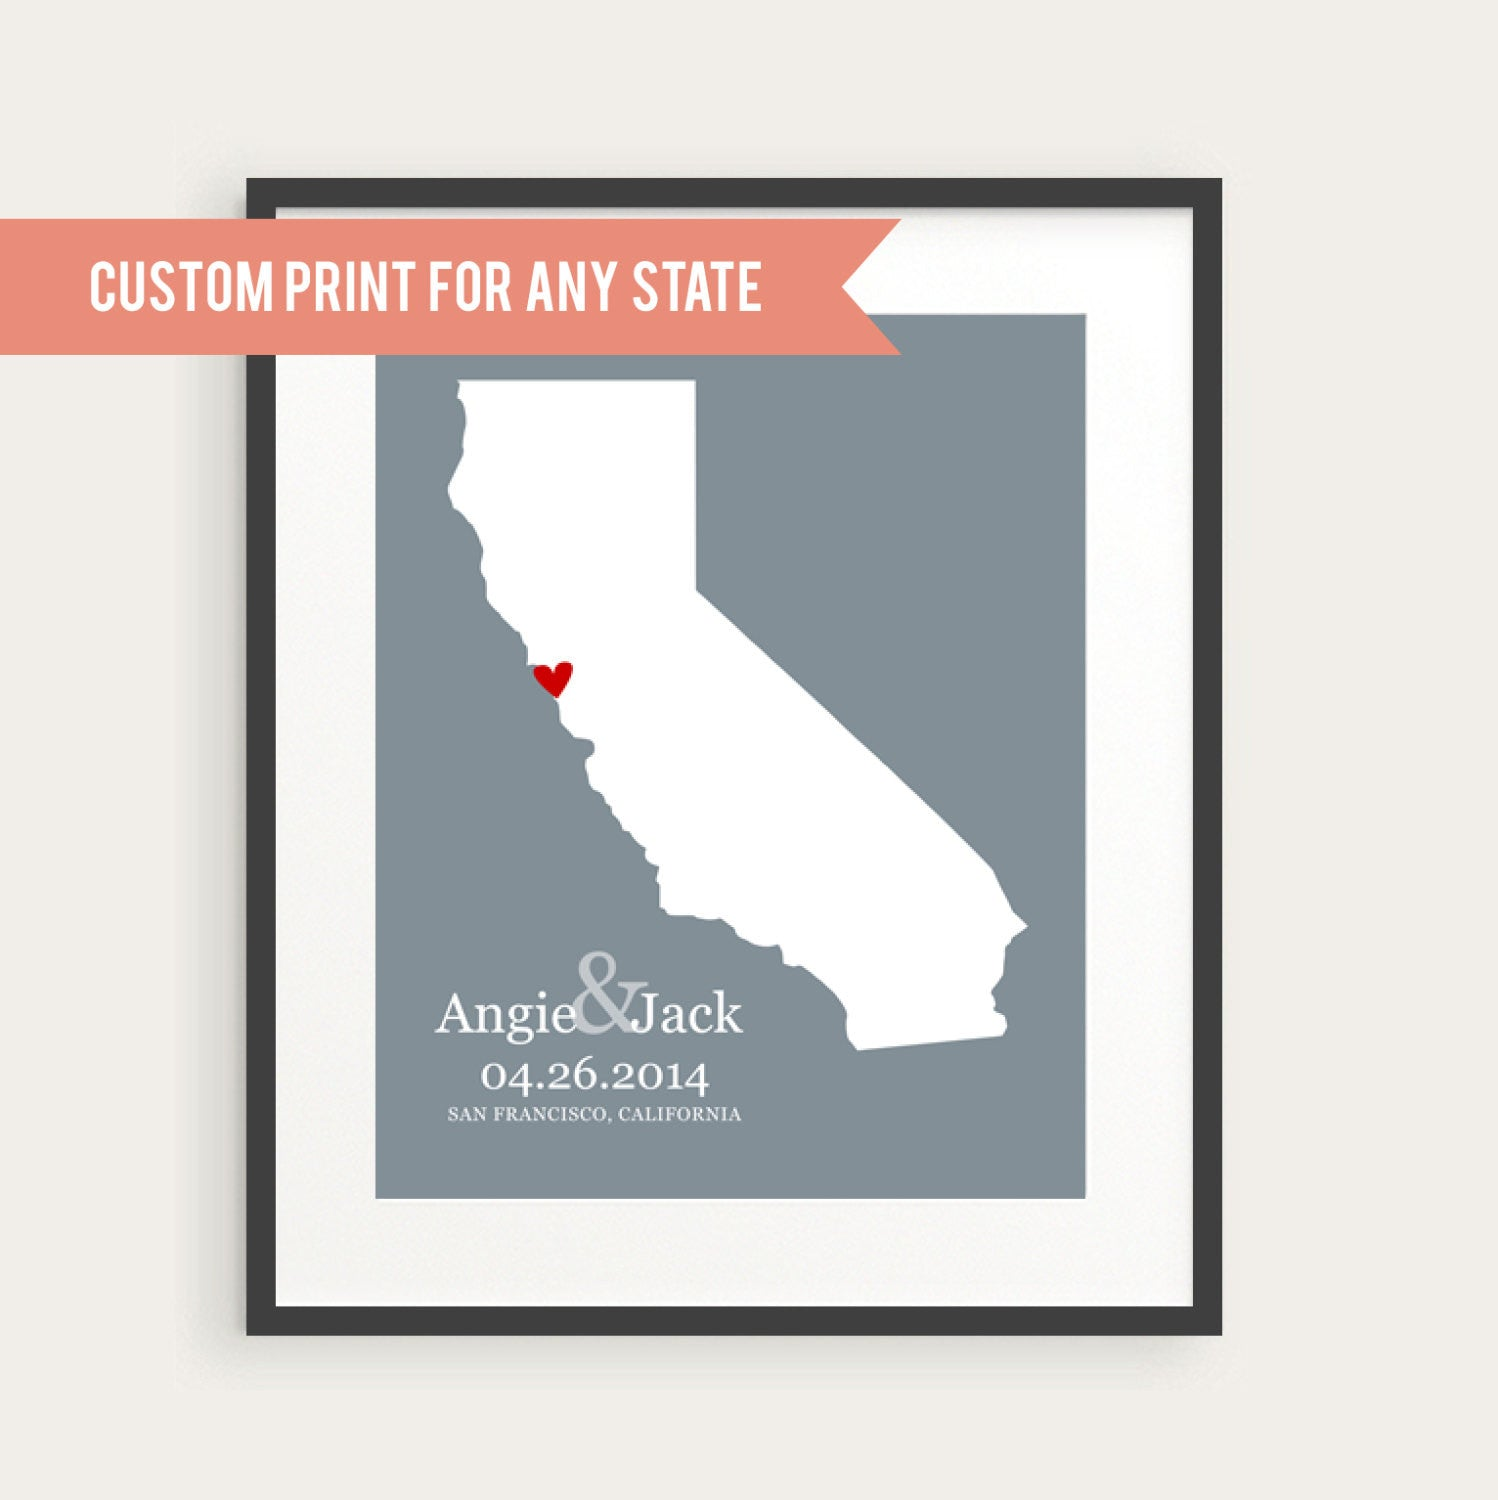 custom wedding gift personalized wedding location print any city any state wedding date gift for couple map home decor print custom wedding gifts Custom Wedding GIft Personalized Wedding Location Print Any City Any State Wedding Date